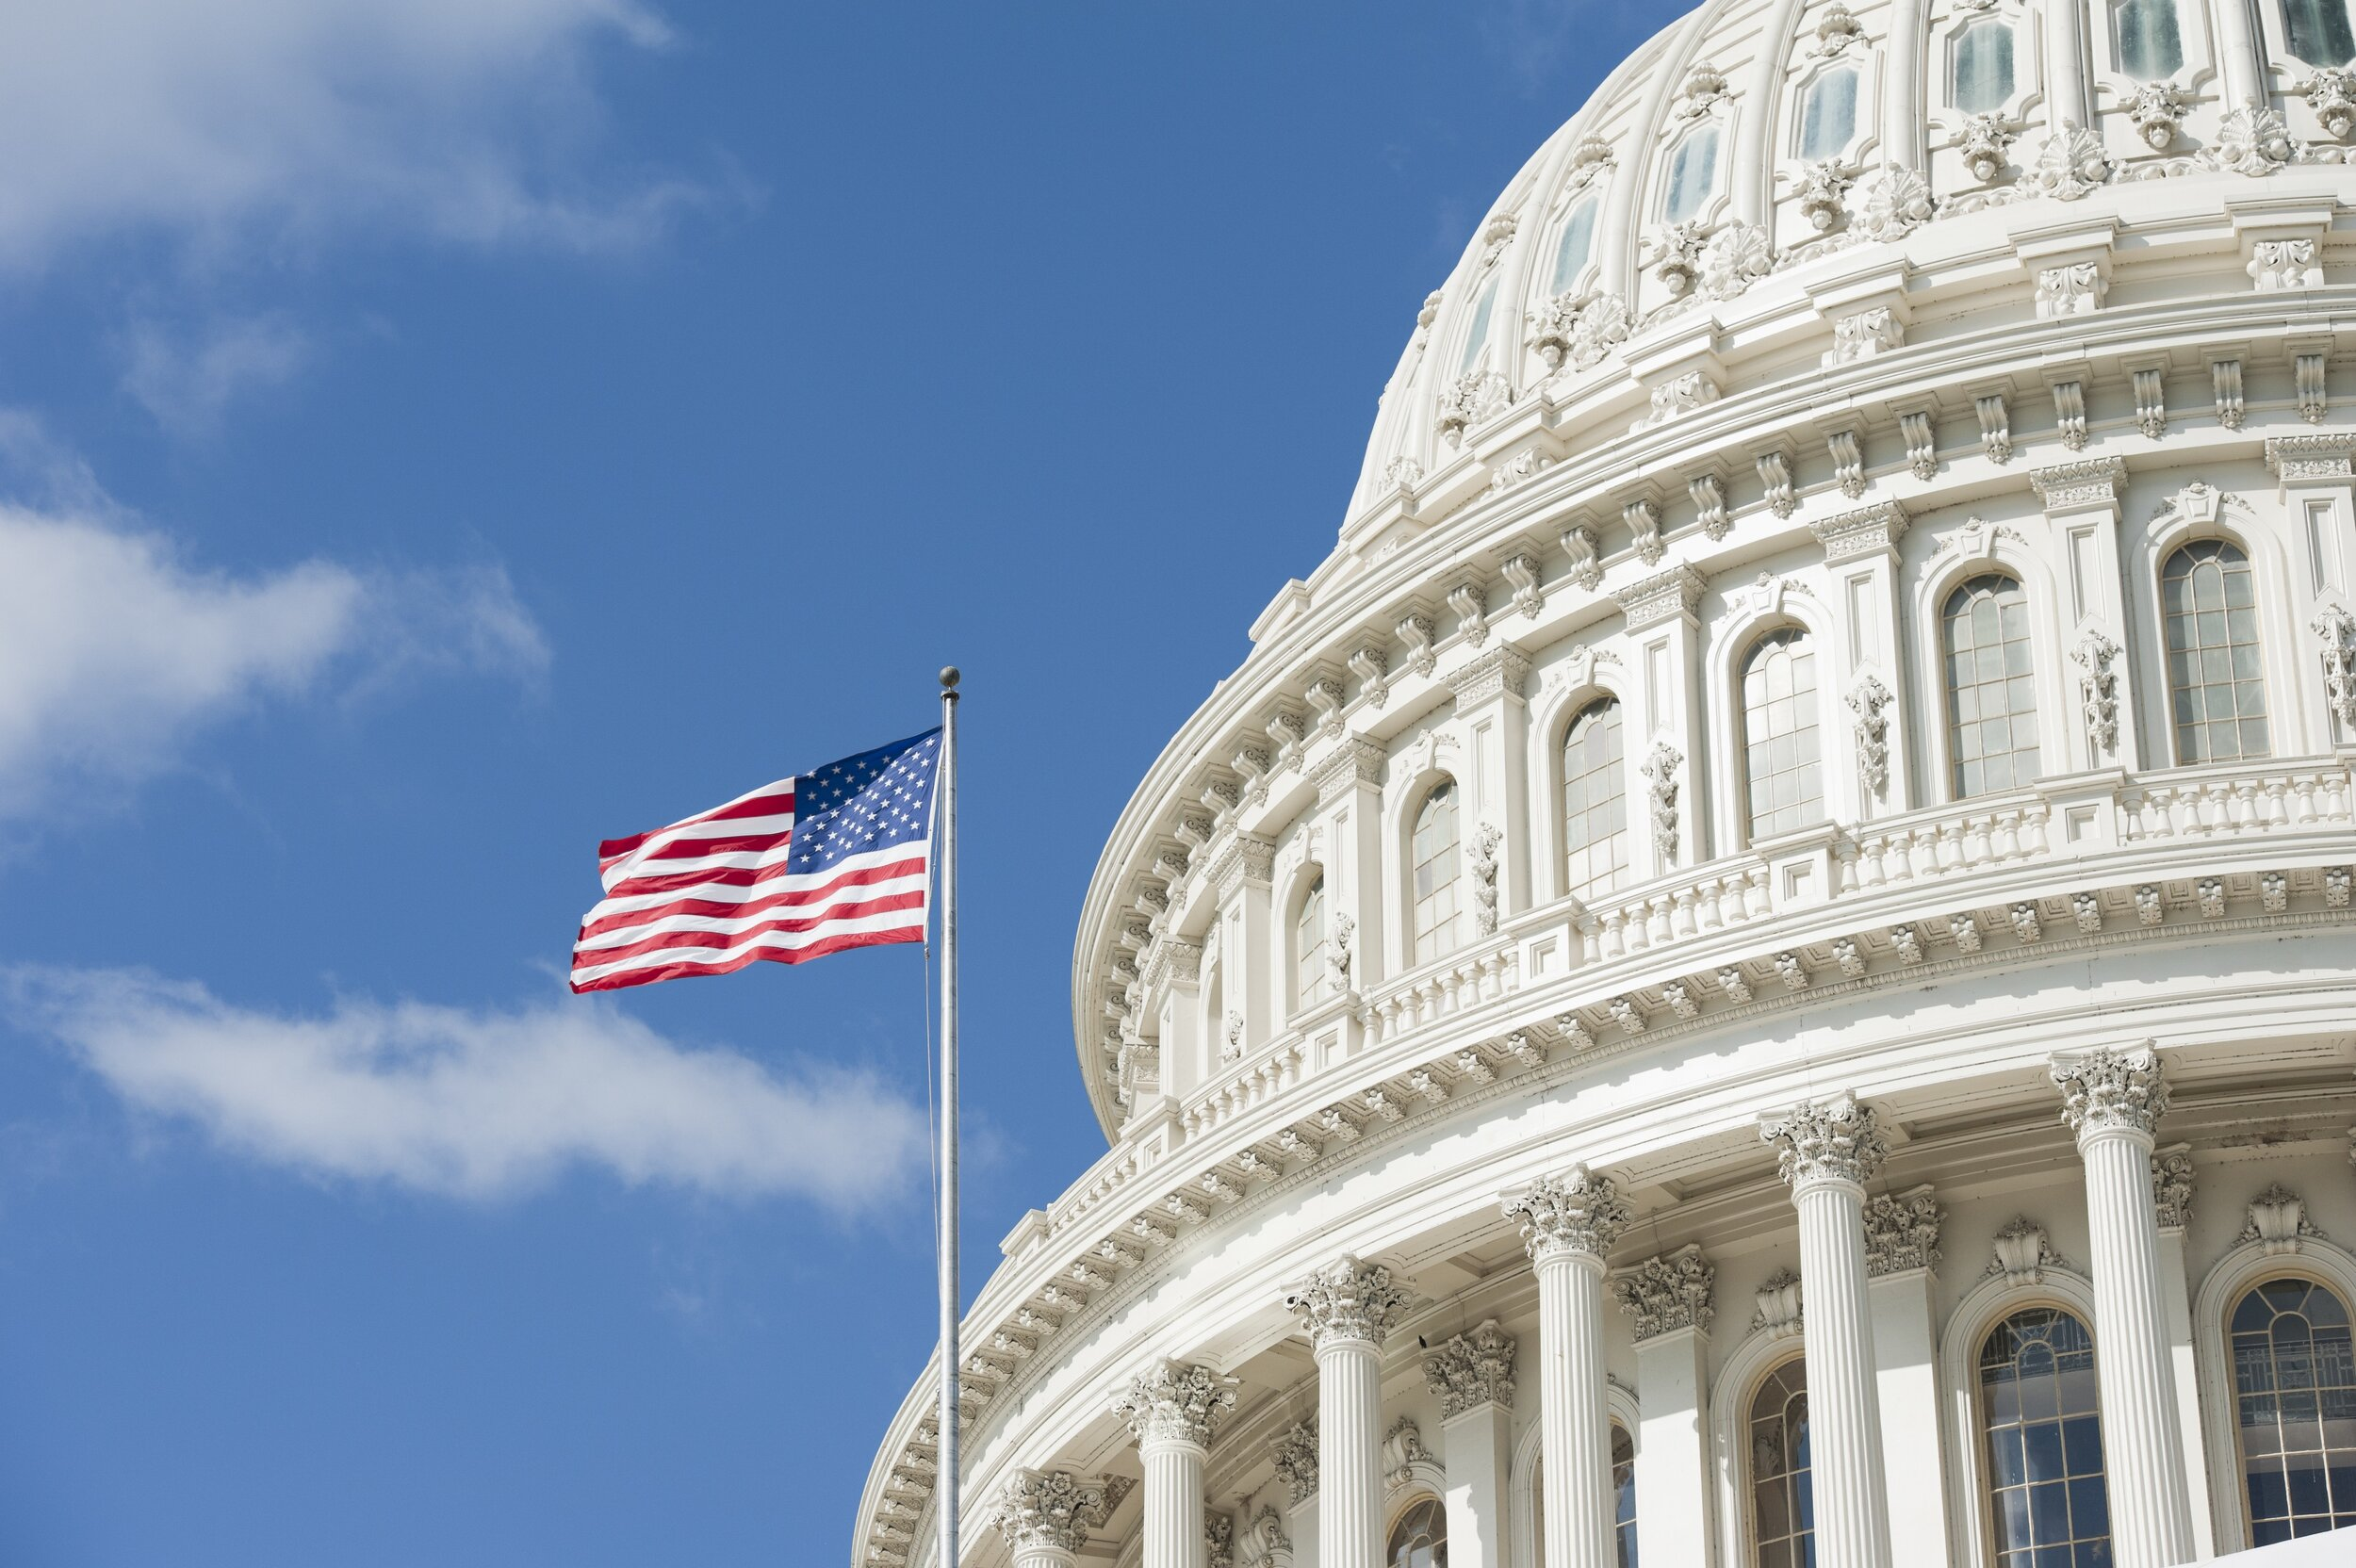 us-capitol-building-with-flag.jpg